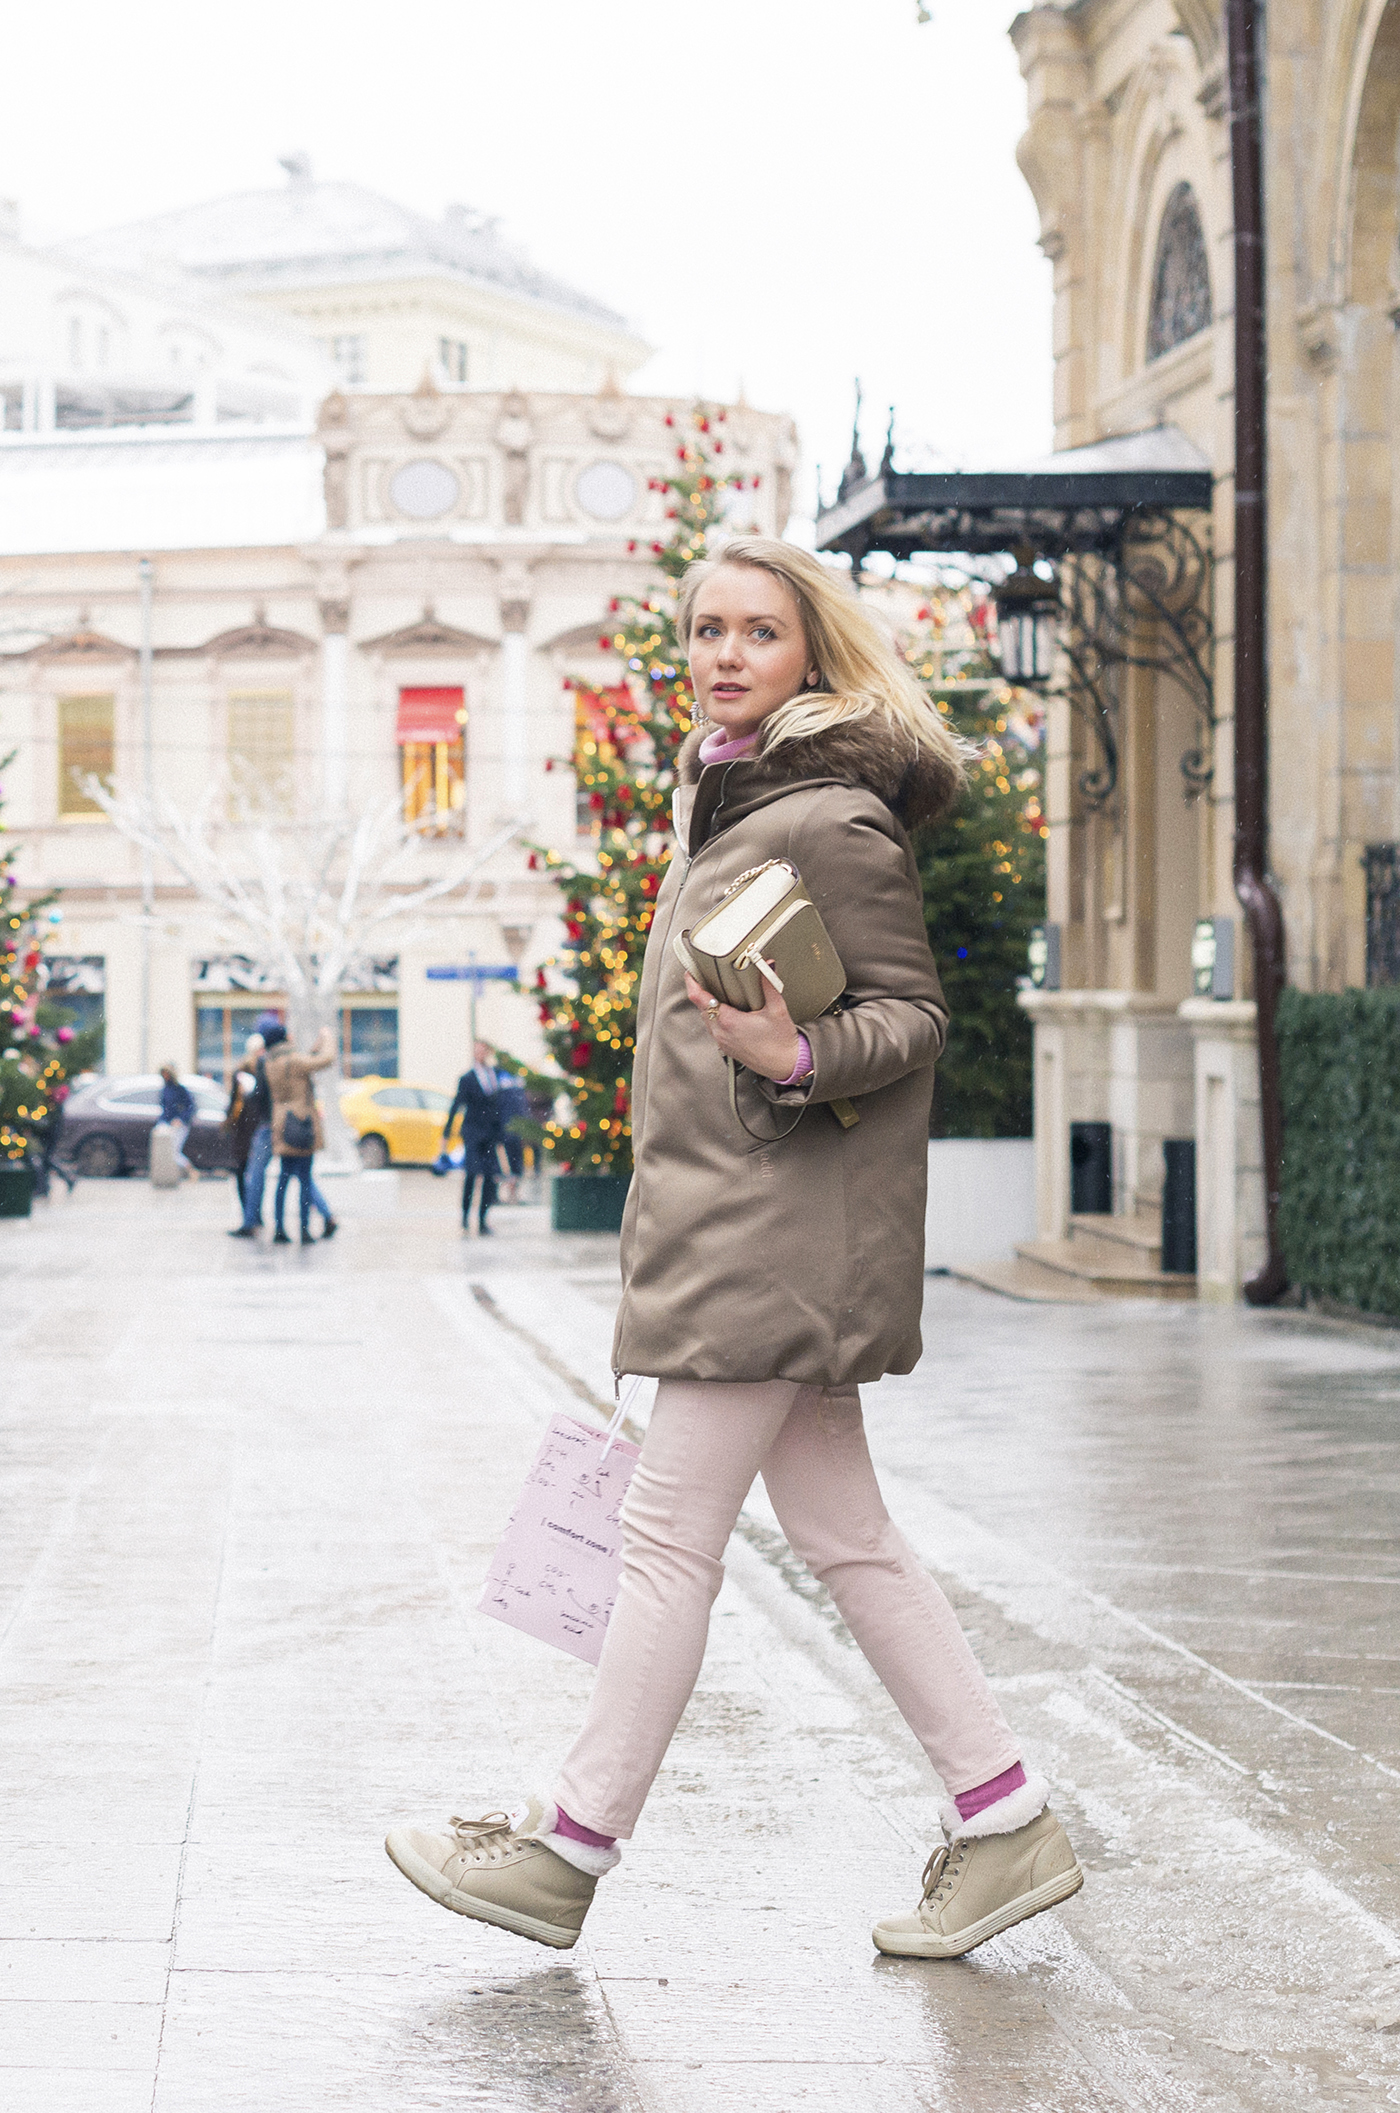 inspiration, streetstyle, winter outfit, annamidday, top fashion blogger, top russian fashion blogger, фэшн блогер, русский блогер, известный блогер, топовый блогер, russian bloger, top russian blogger, streetfashion, russian fashion blogger, blogger, fashion, style, fashionista, модный блогер, российский блогер, ТОП блогер, ootd, lookoftheday, look, популярный блогер, российский модный блогер, russian girl, с чем носить пуховик, pastel outfir, pastel downcoat, downcoat streetstyle, пастельные цвета, цветовые сочетания, streetstyle, красивая девушка, Анна миддэй, анна мидэй, DKNY golden bag, crown australia boots, pink sweater, russian winter, bon prix sweater